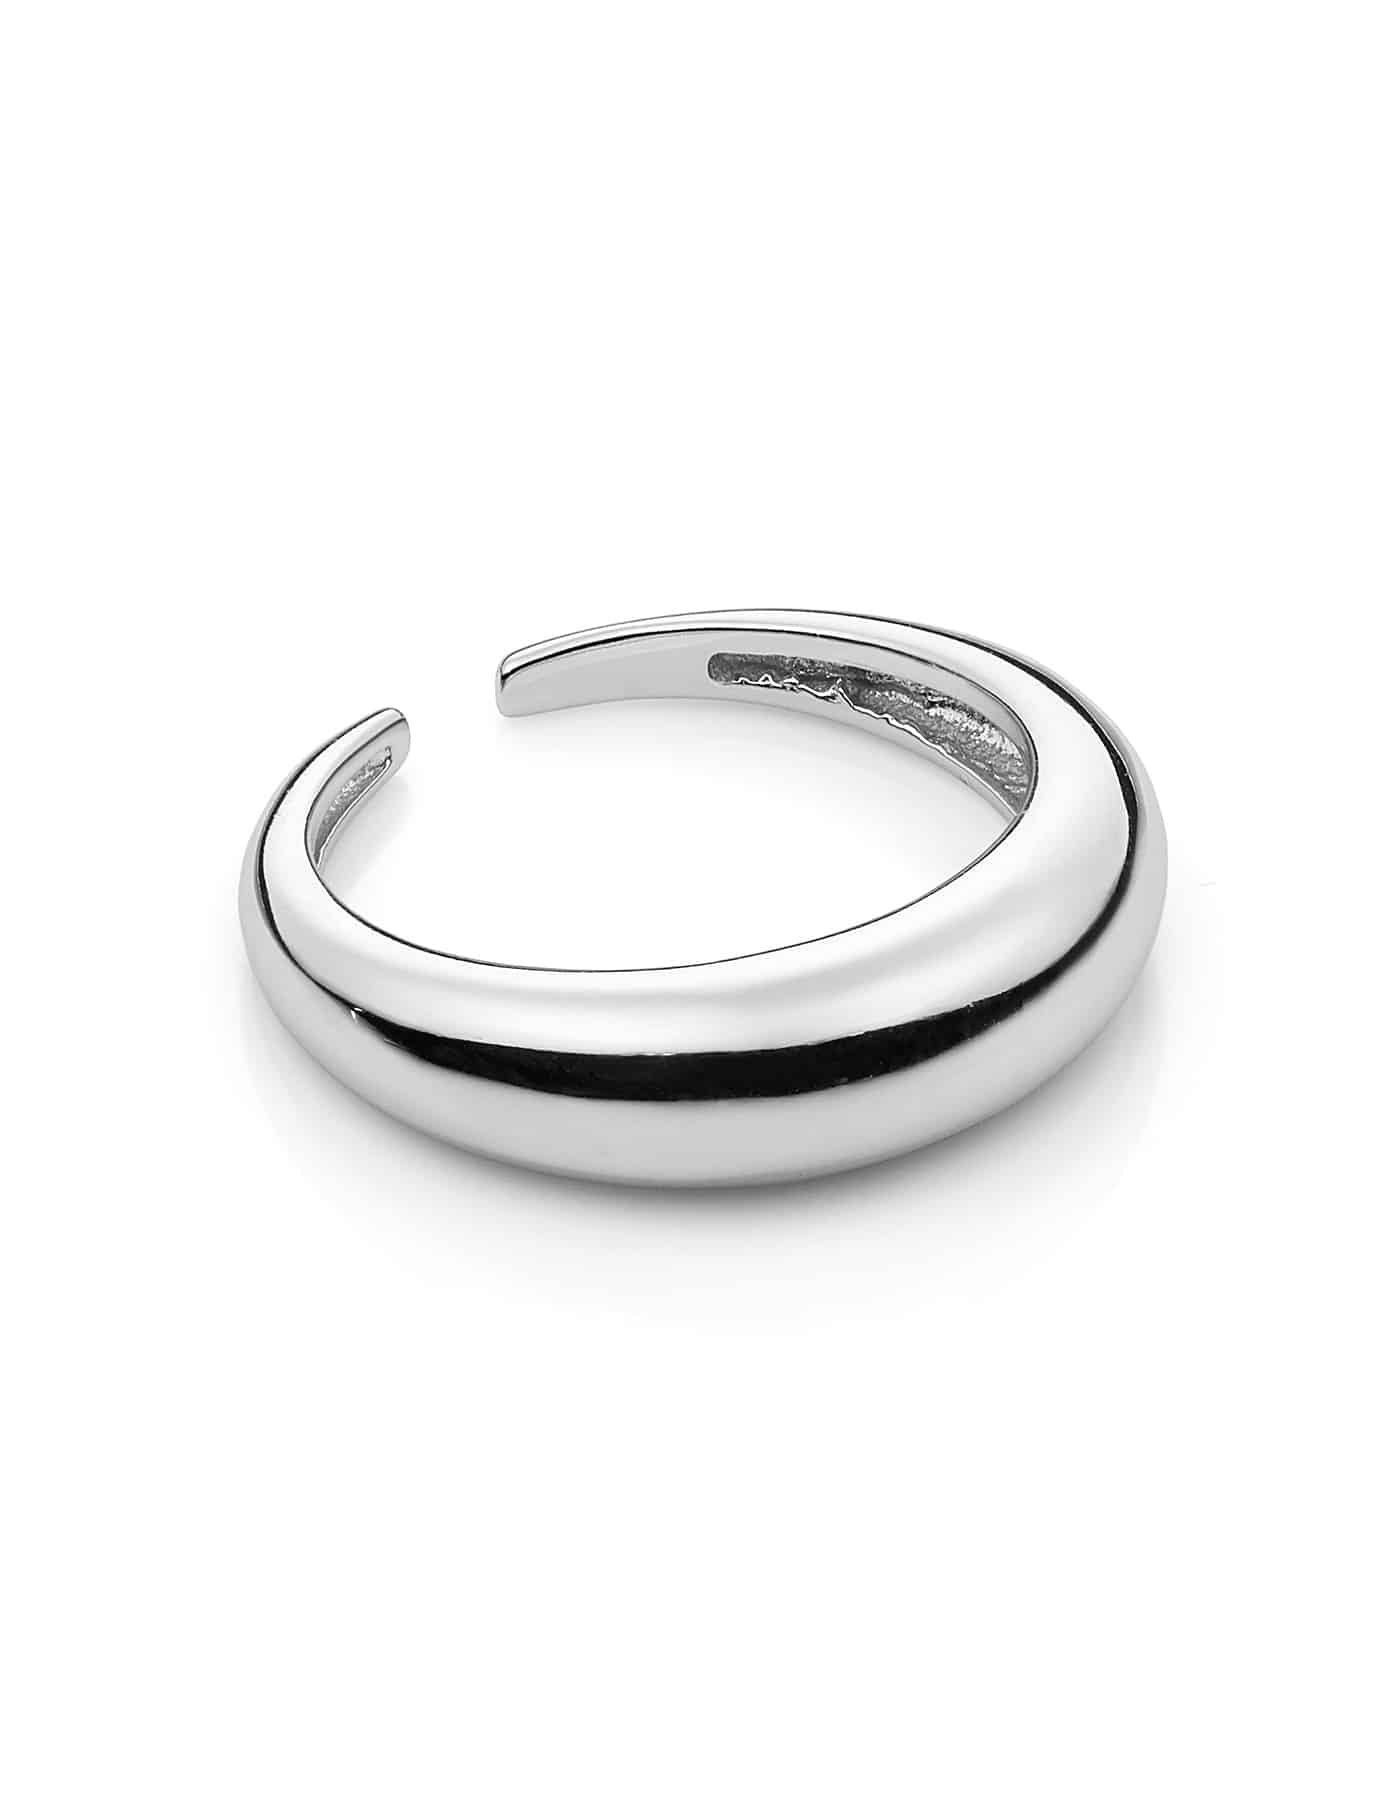 Silver Adjustable Small Dome Ring